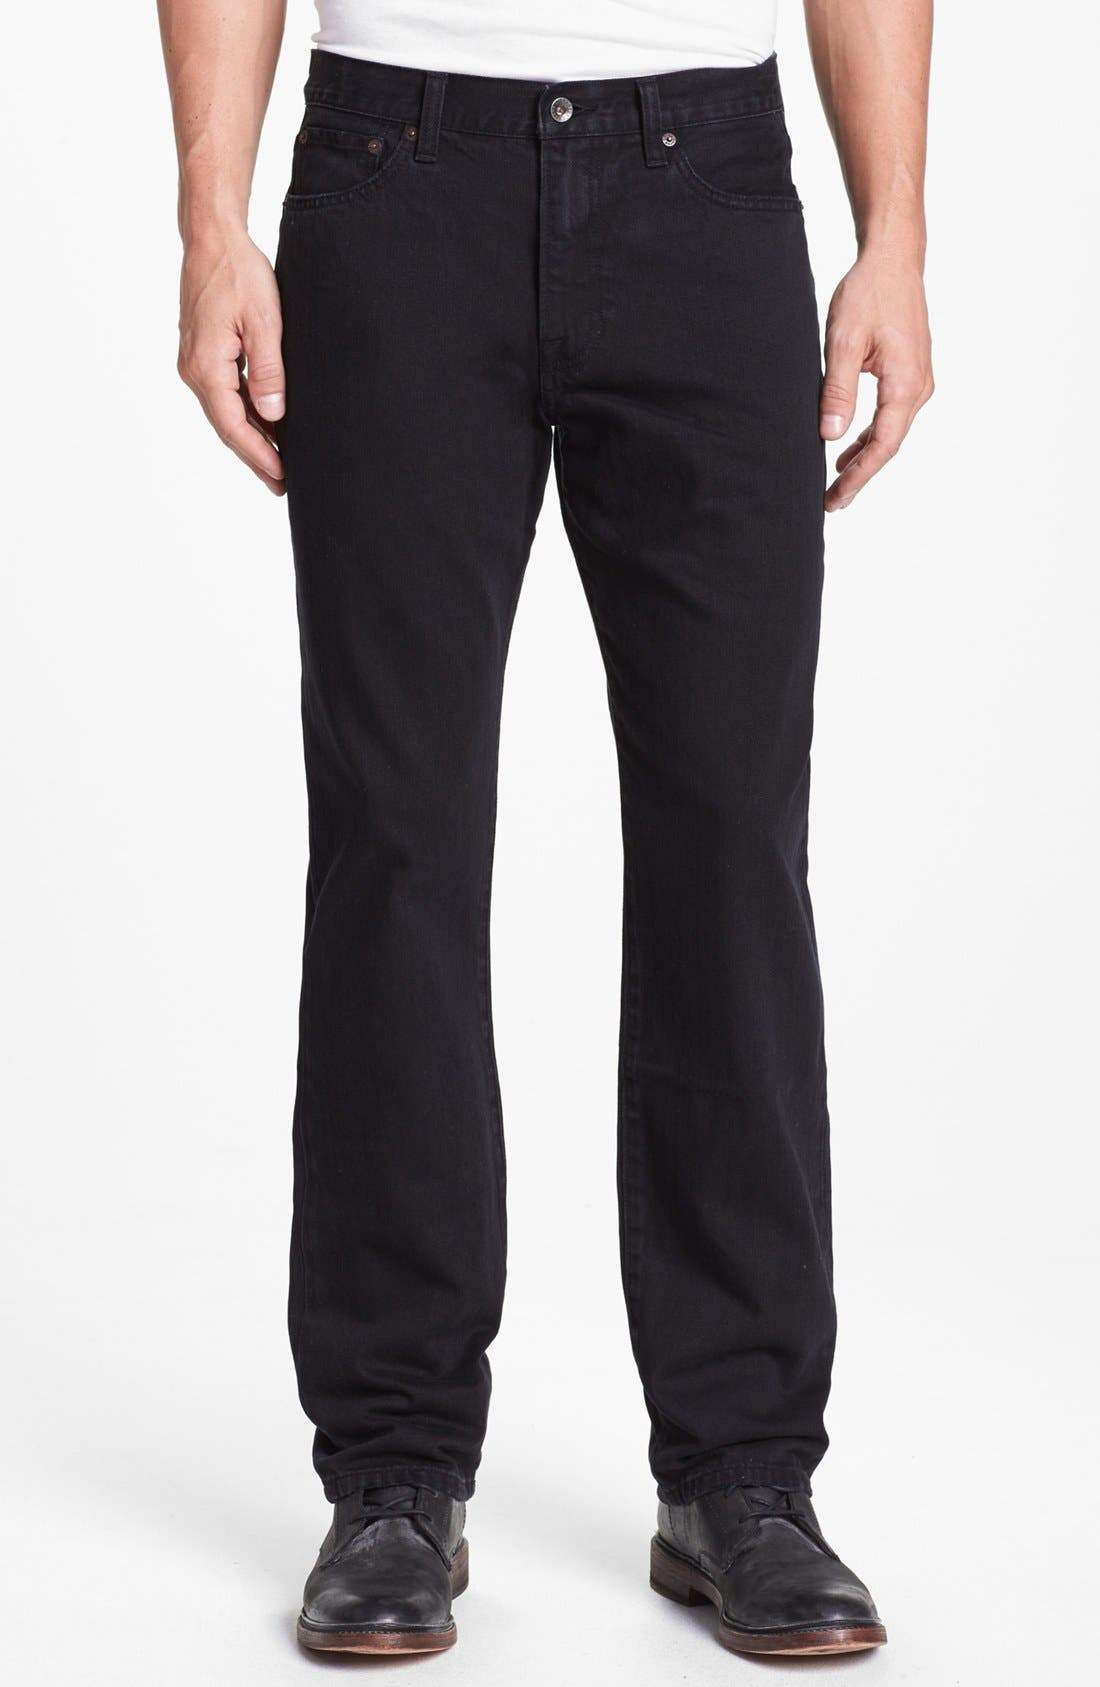 Alternate Image 1 Selected - Lucky Brand '329' Classic Straight Leg Jeans (Logsboro)